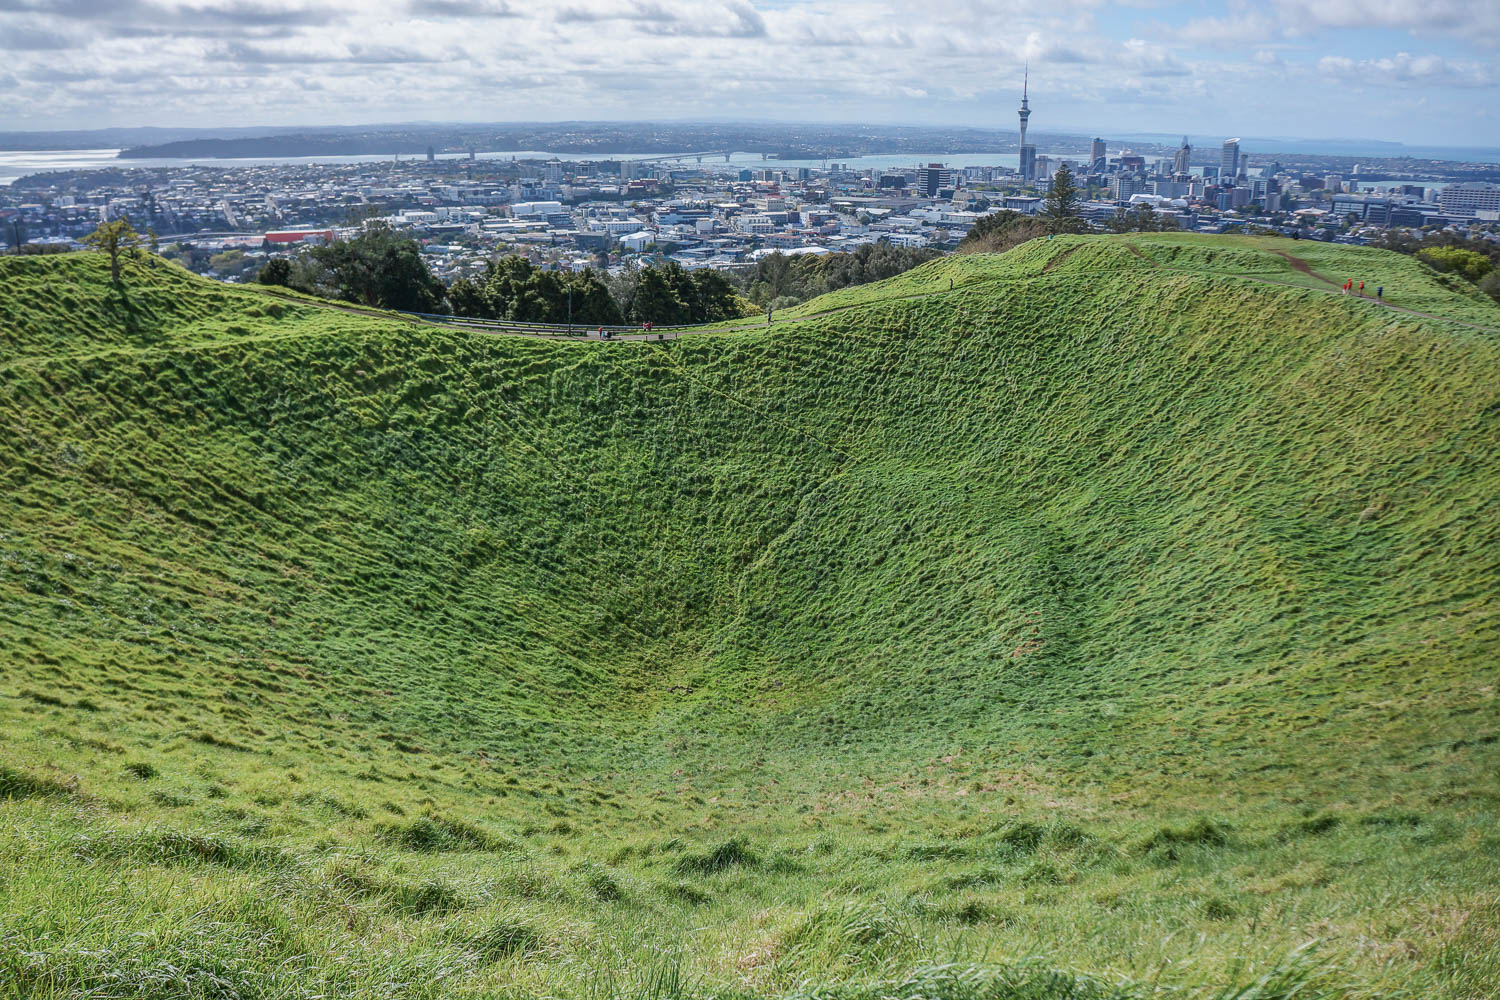 Mount Eden  is a dormant volcano whose summit is the highest natural point in auckland.